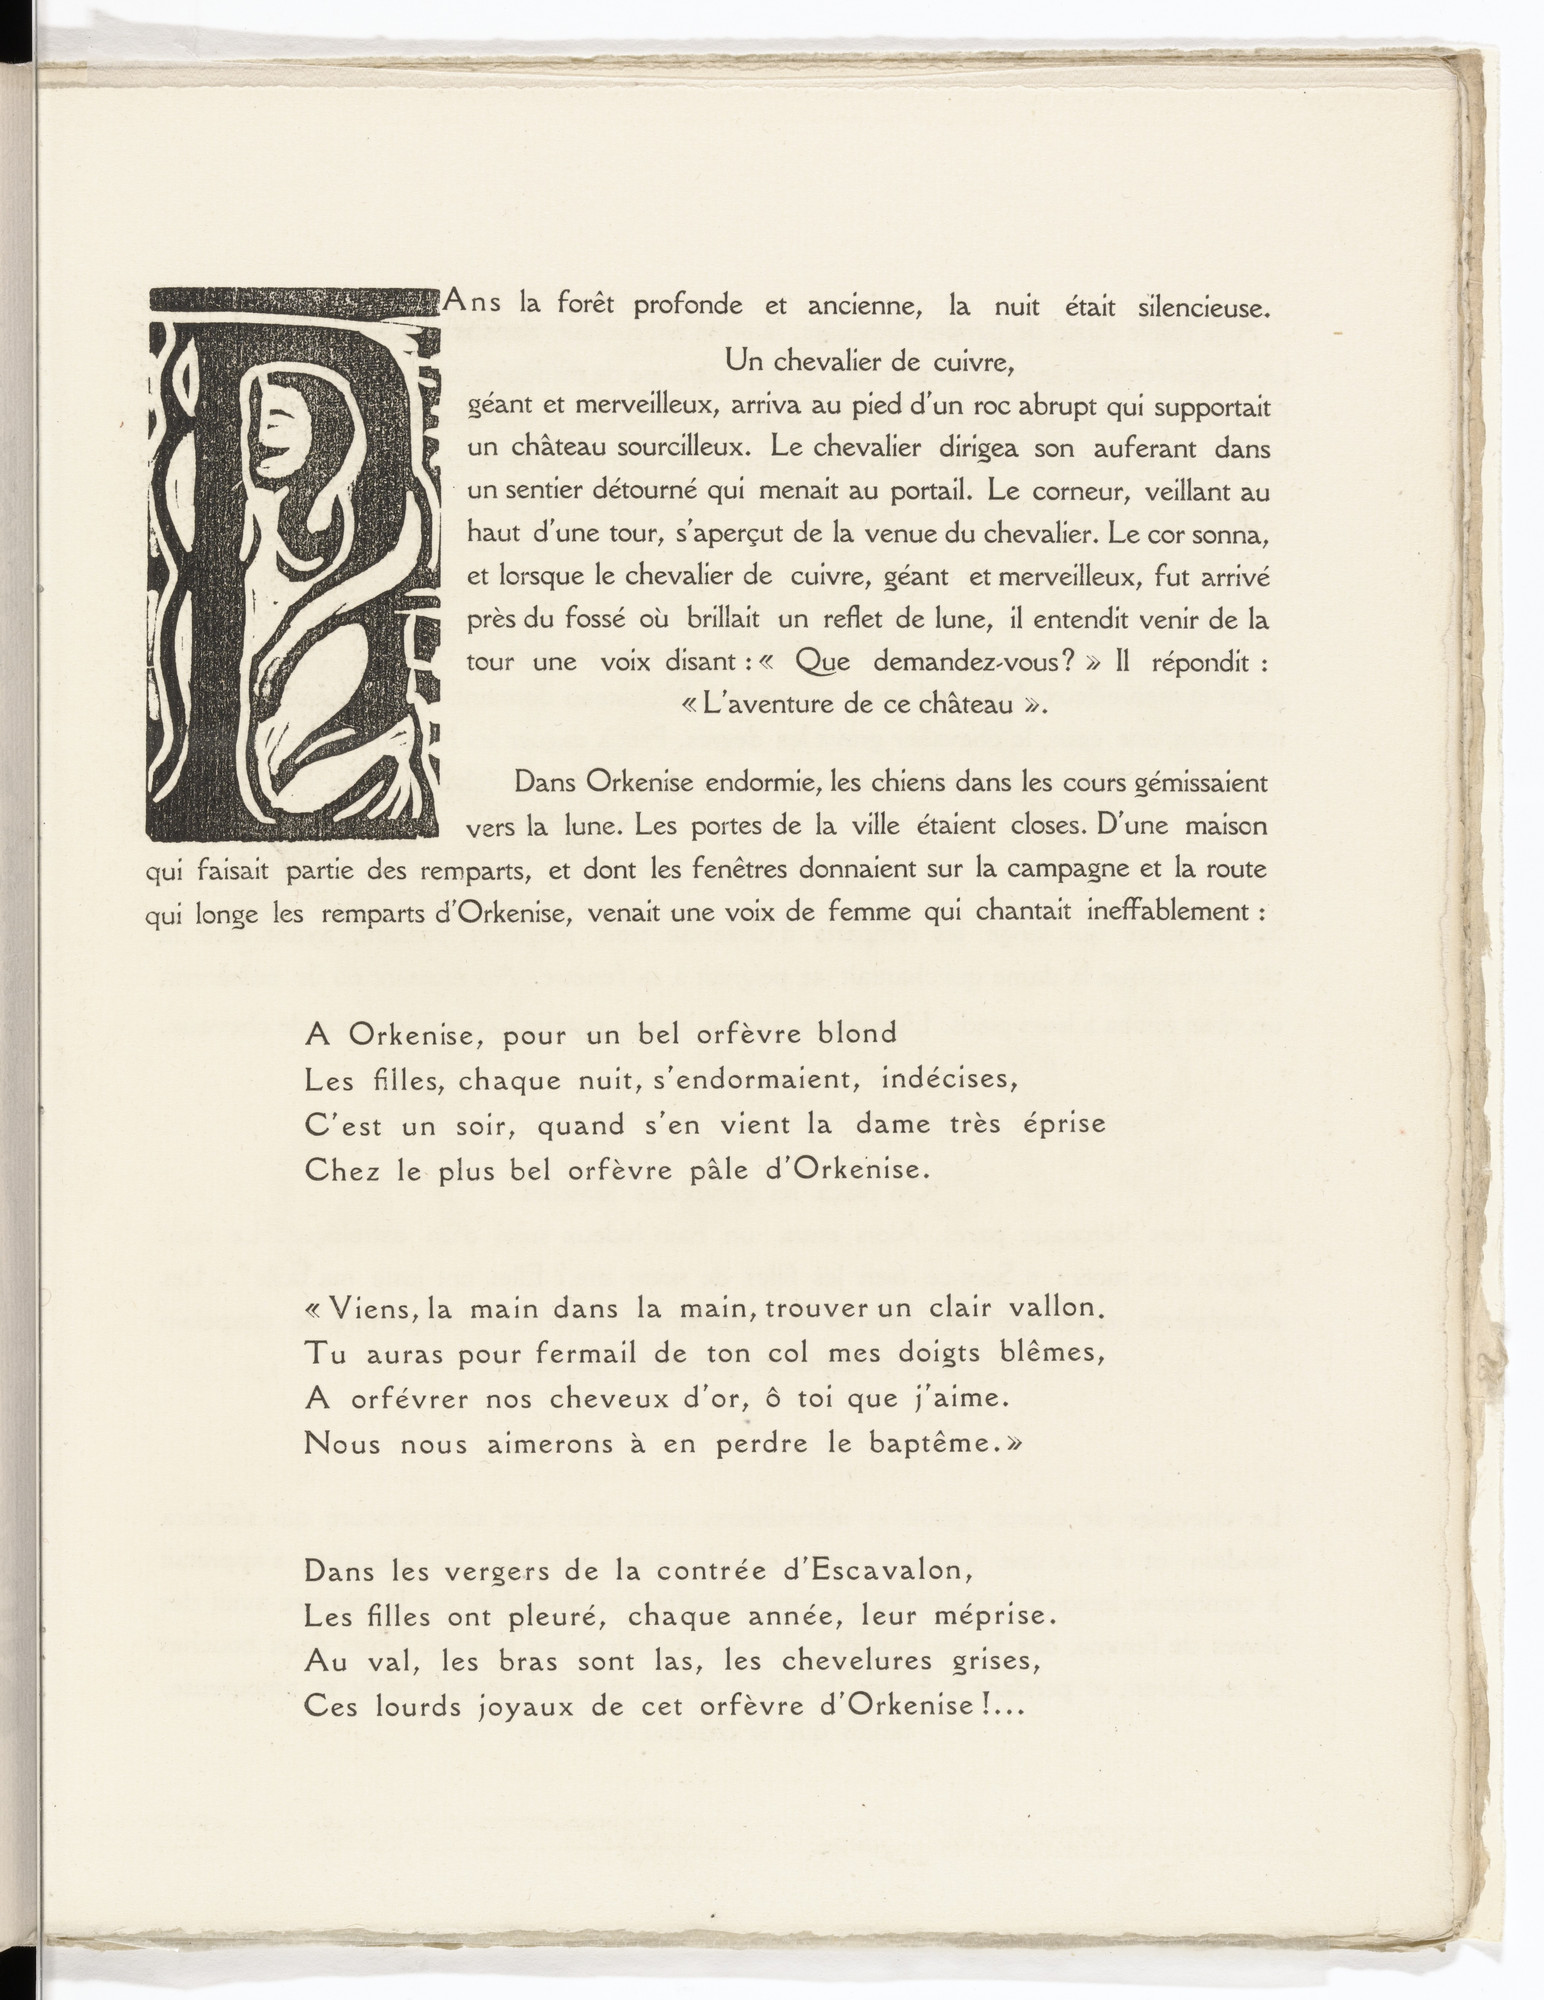 André Derain. Pictorial initial D (folio 27) from L'Enchanteur pourrissant. 1909